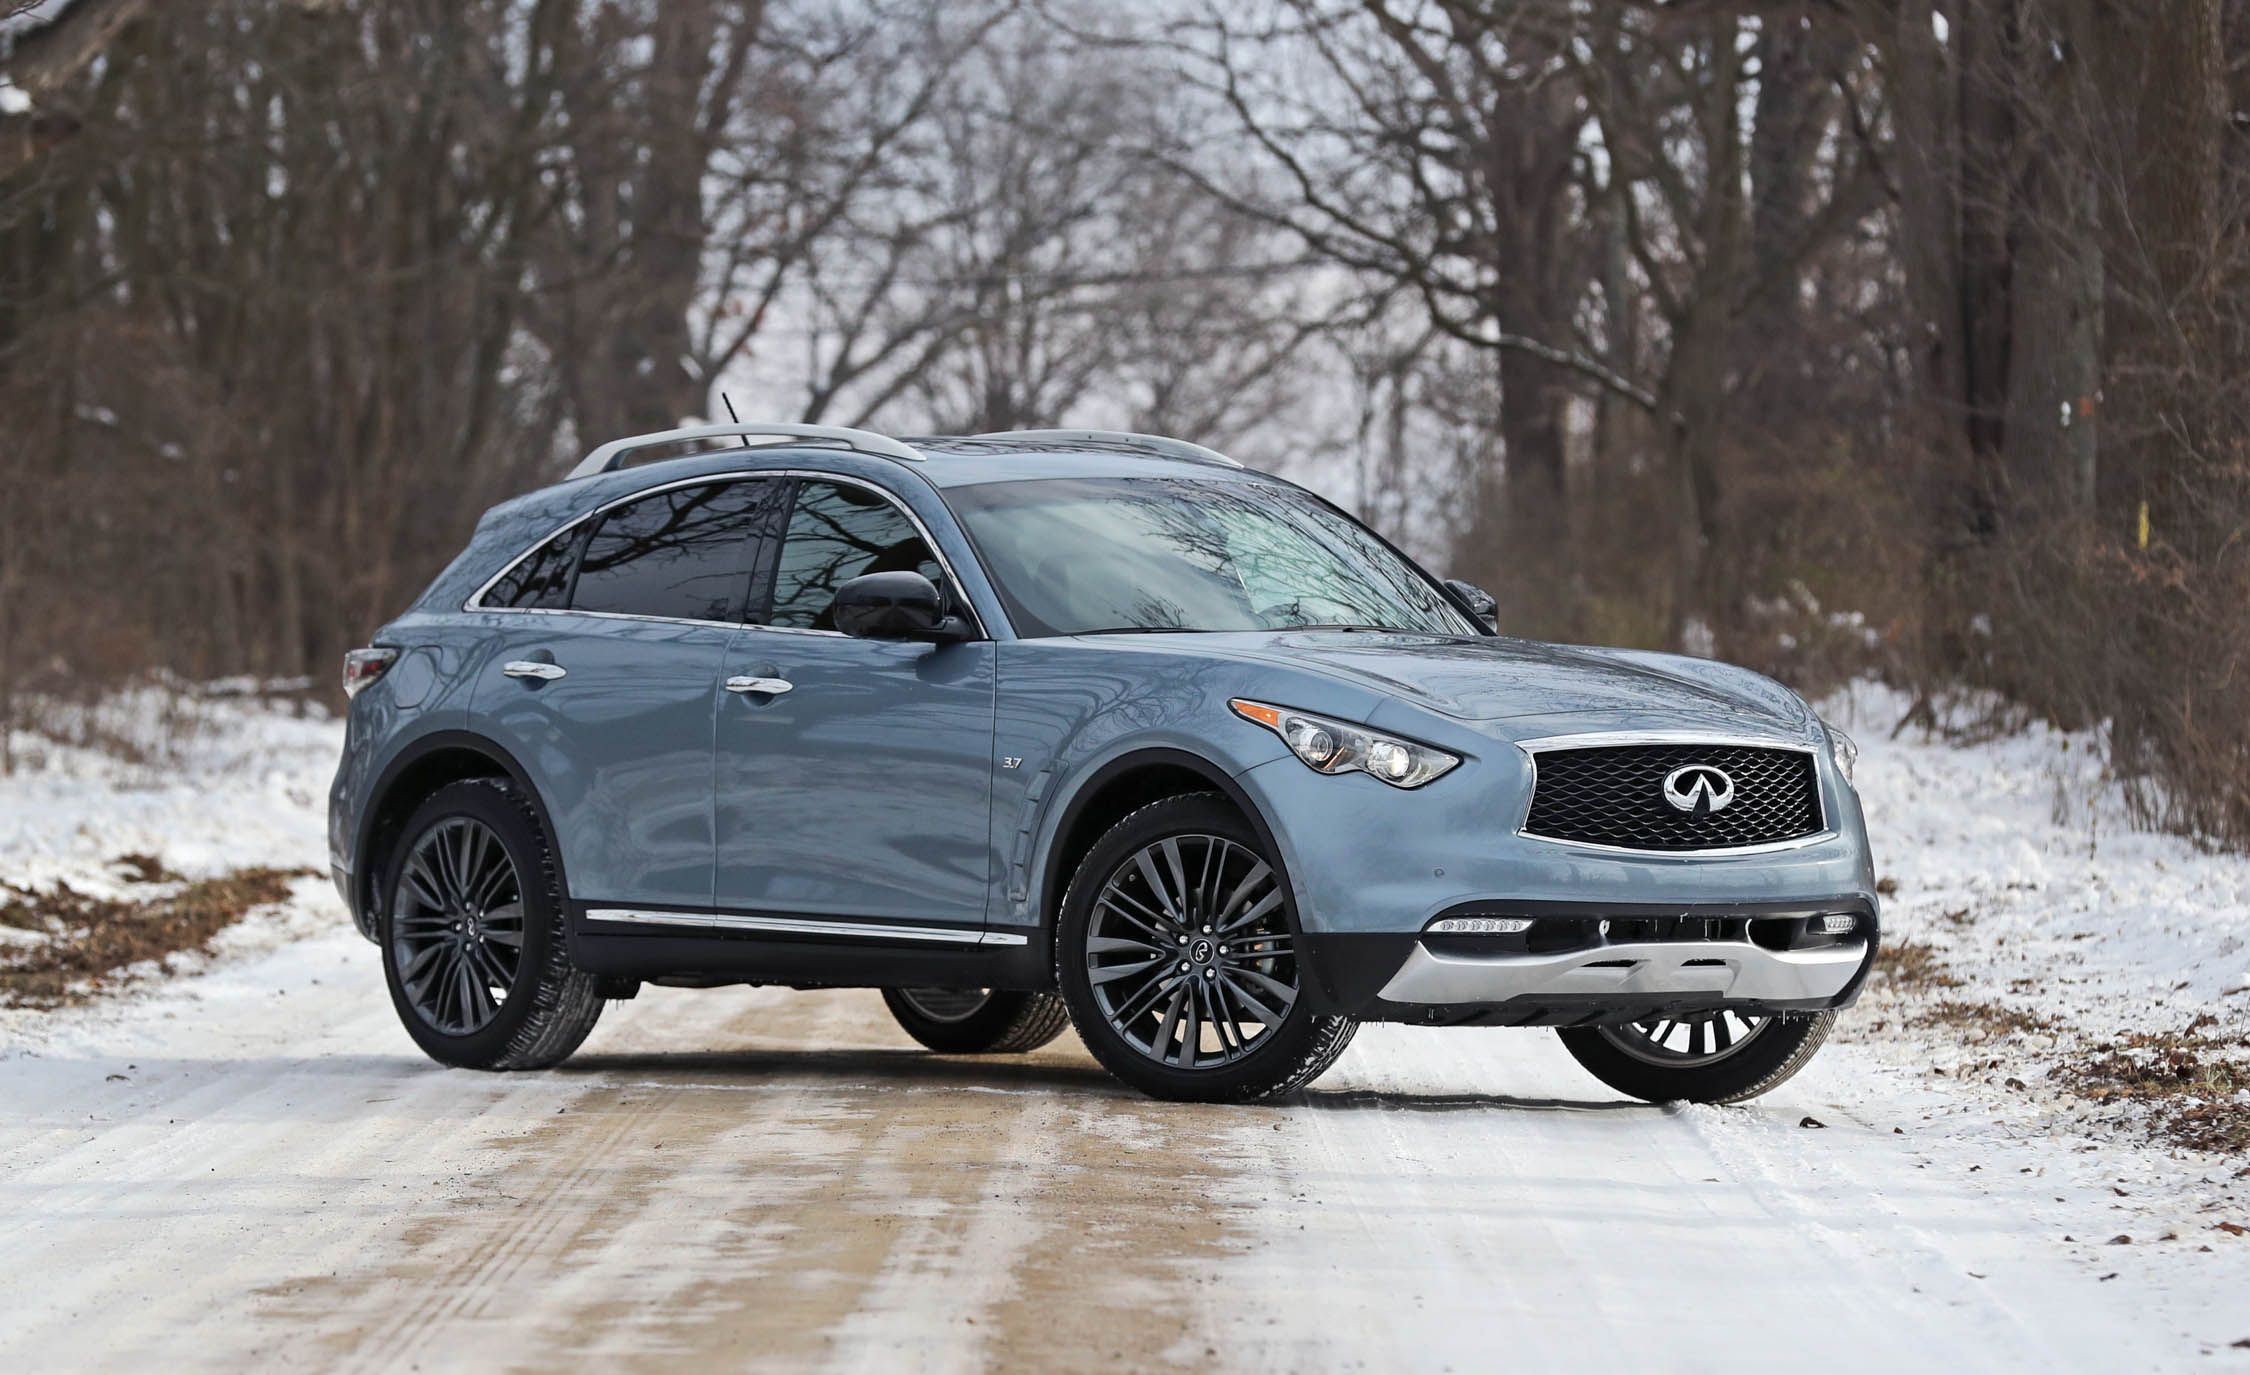 review fx expert of infinity infiniti used suv vehicle